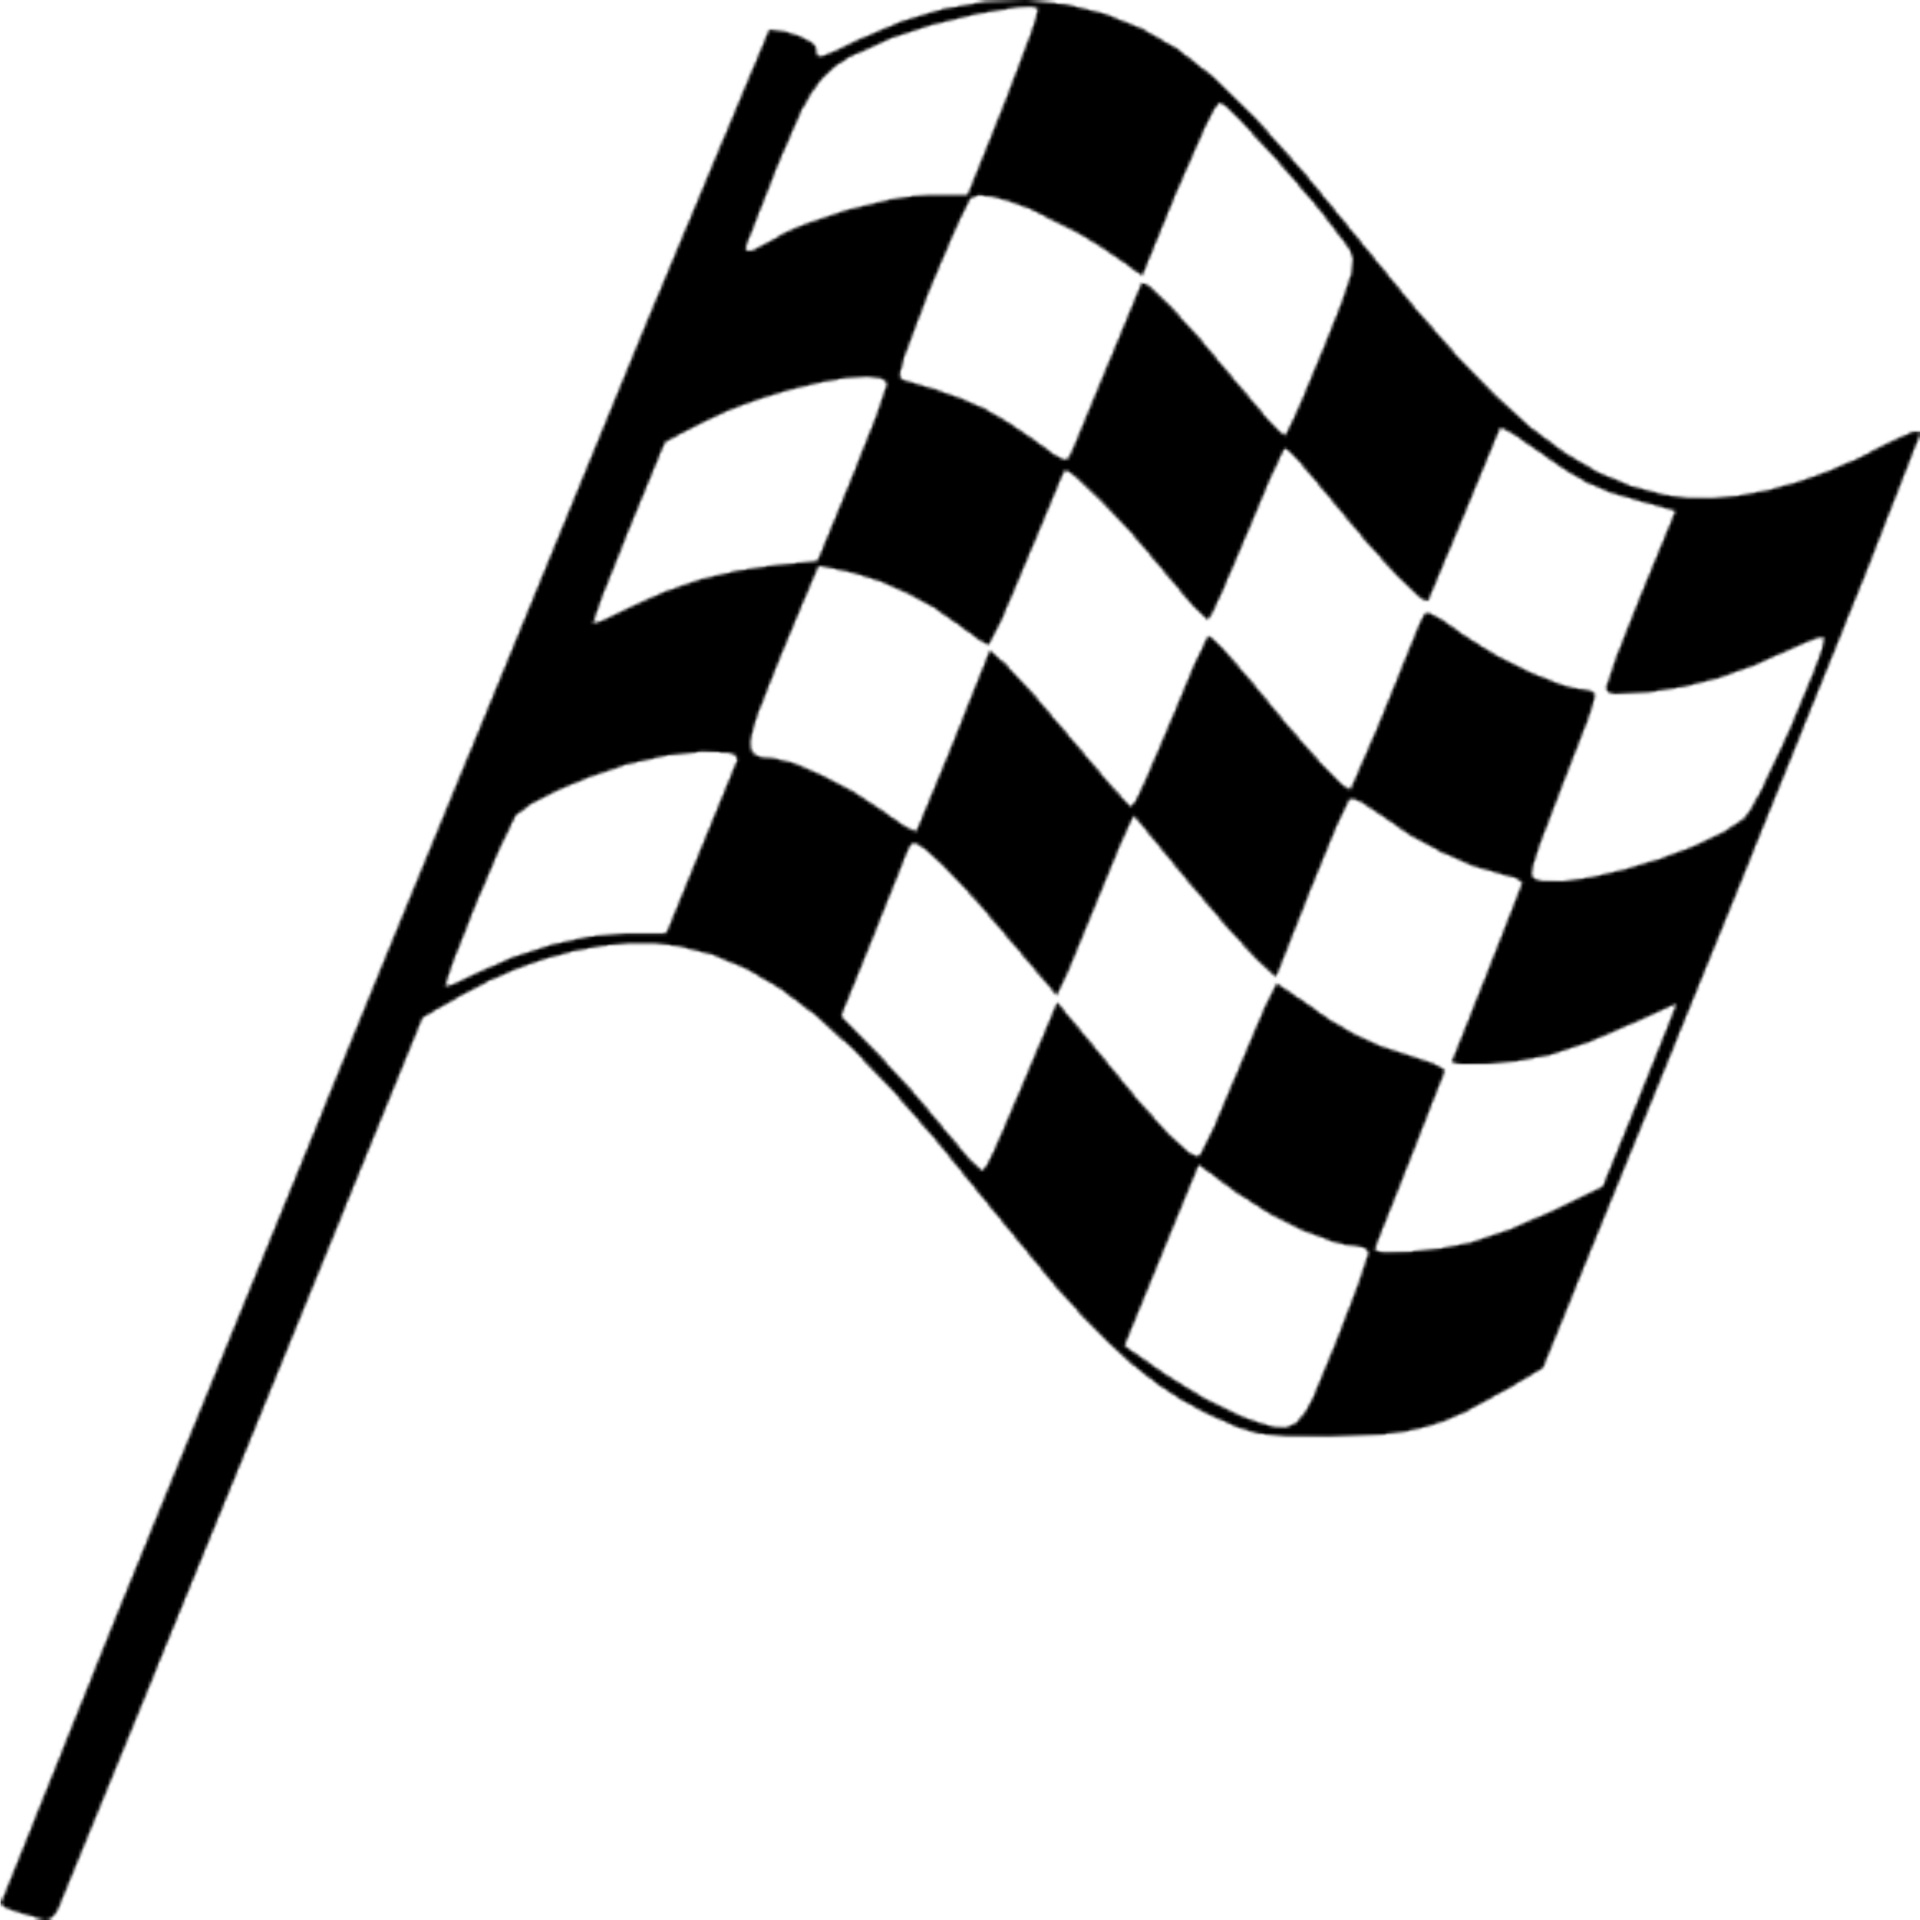 Black And White Racing Flag Clipart.